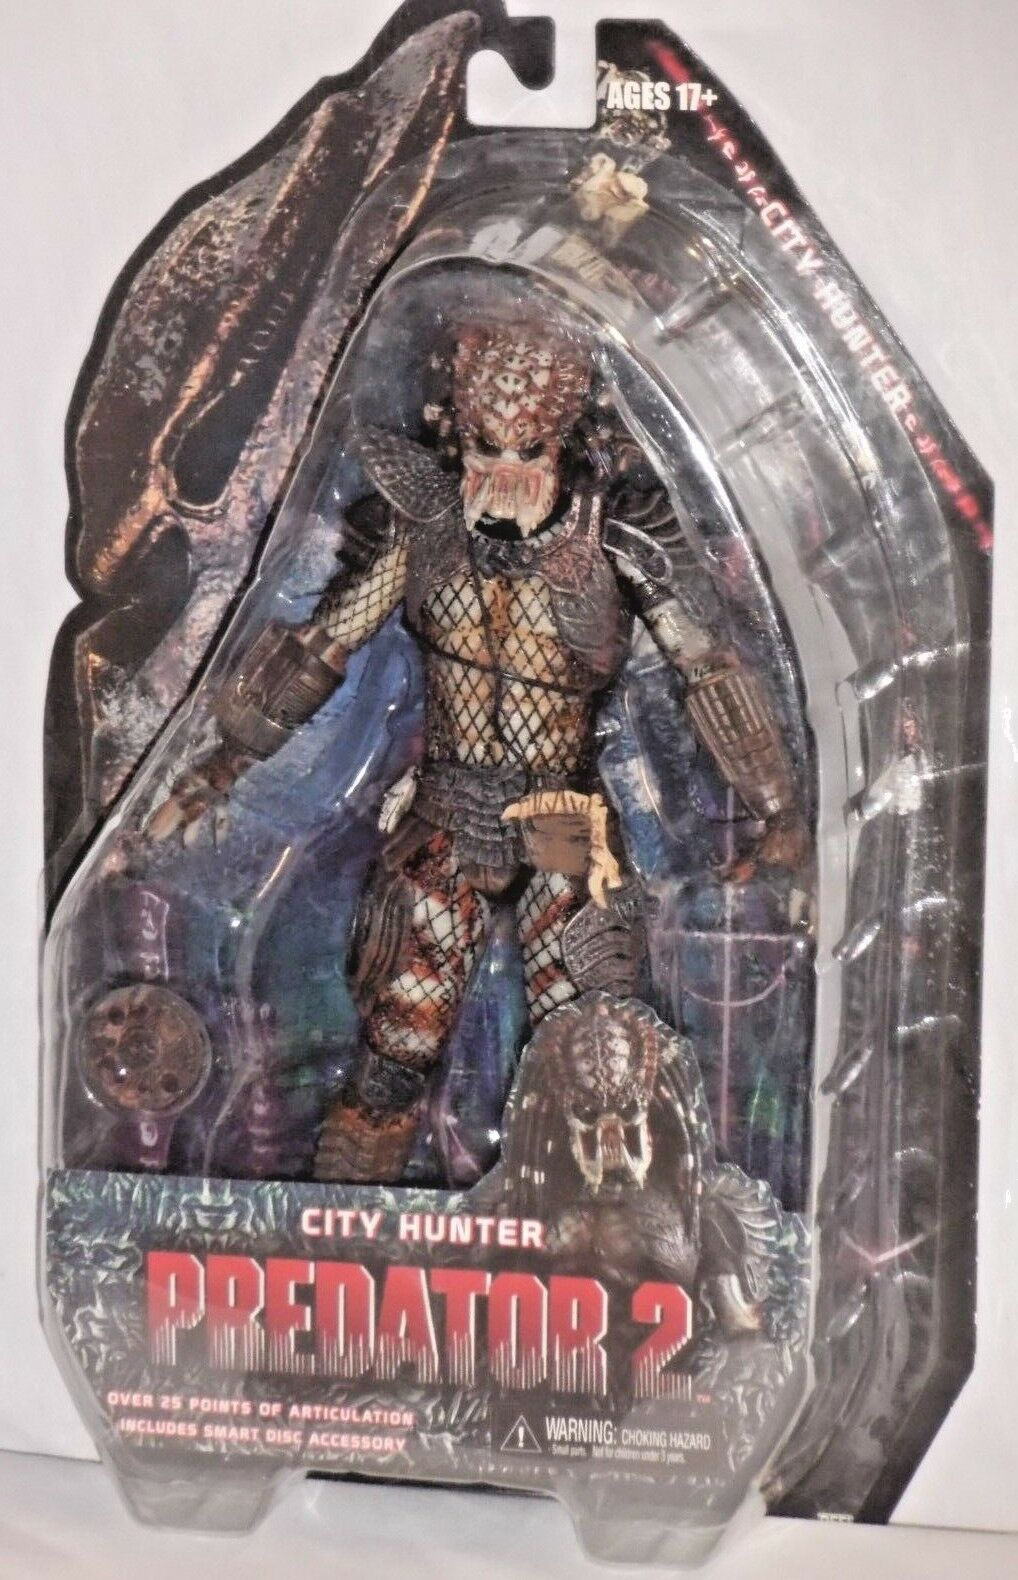 NECA PROTATOR 2 Series 4 UNMASKED CITY HUNTER cult horror movie 7